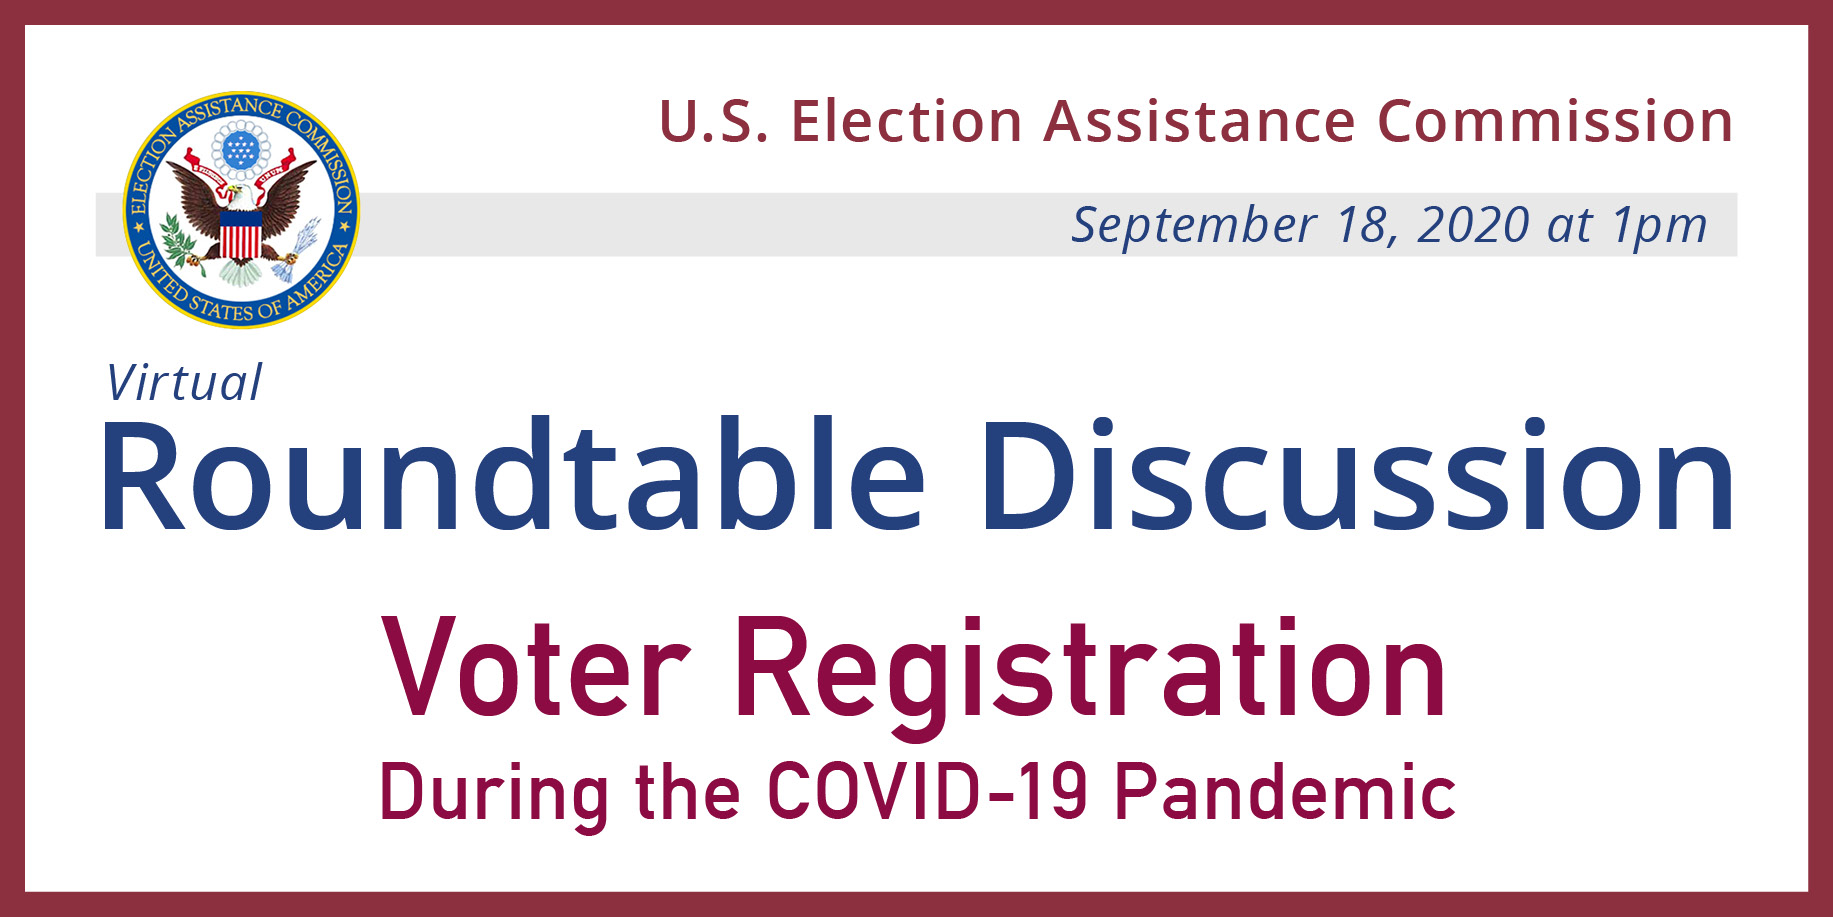 EAC Roundtable Discussion: Voter Registration During the COVID-19 Pandemic. September 18, 2020 at 1pm